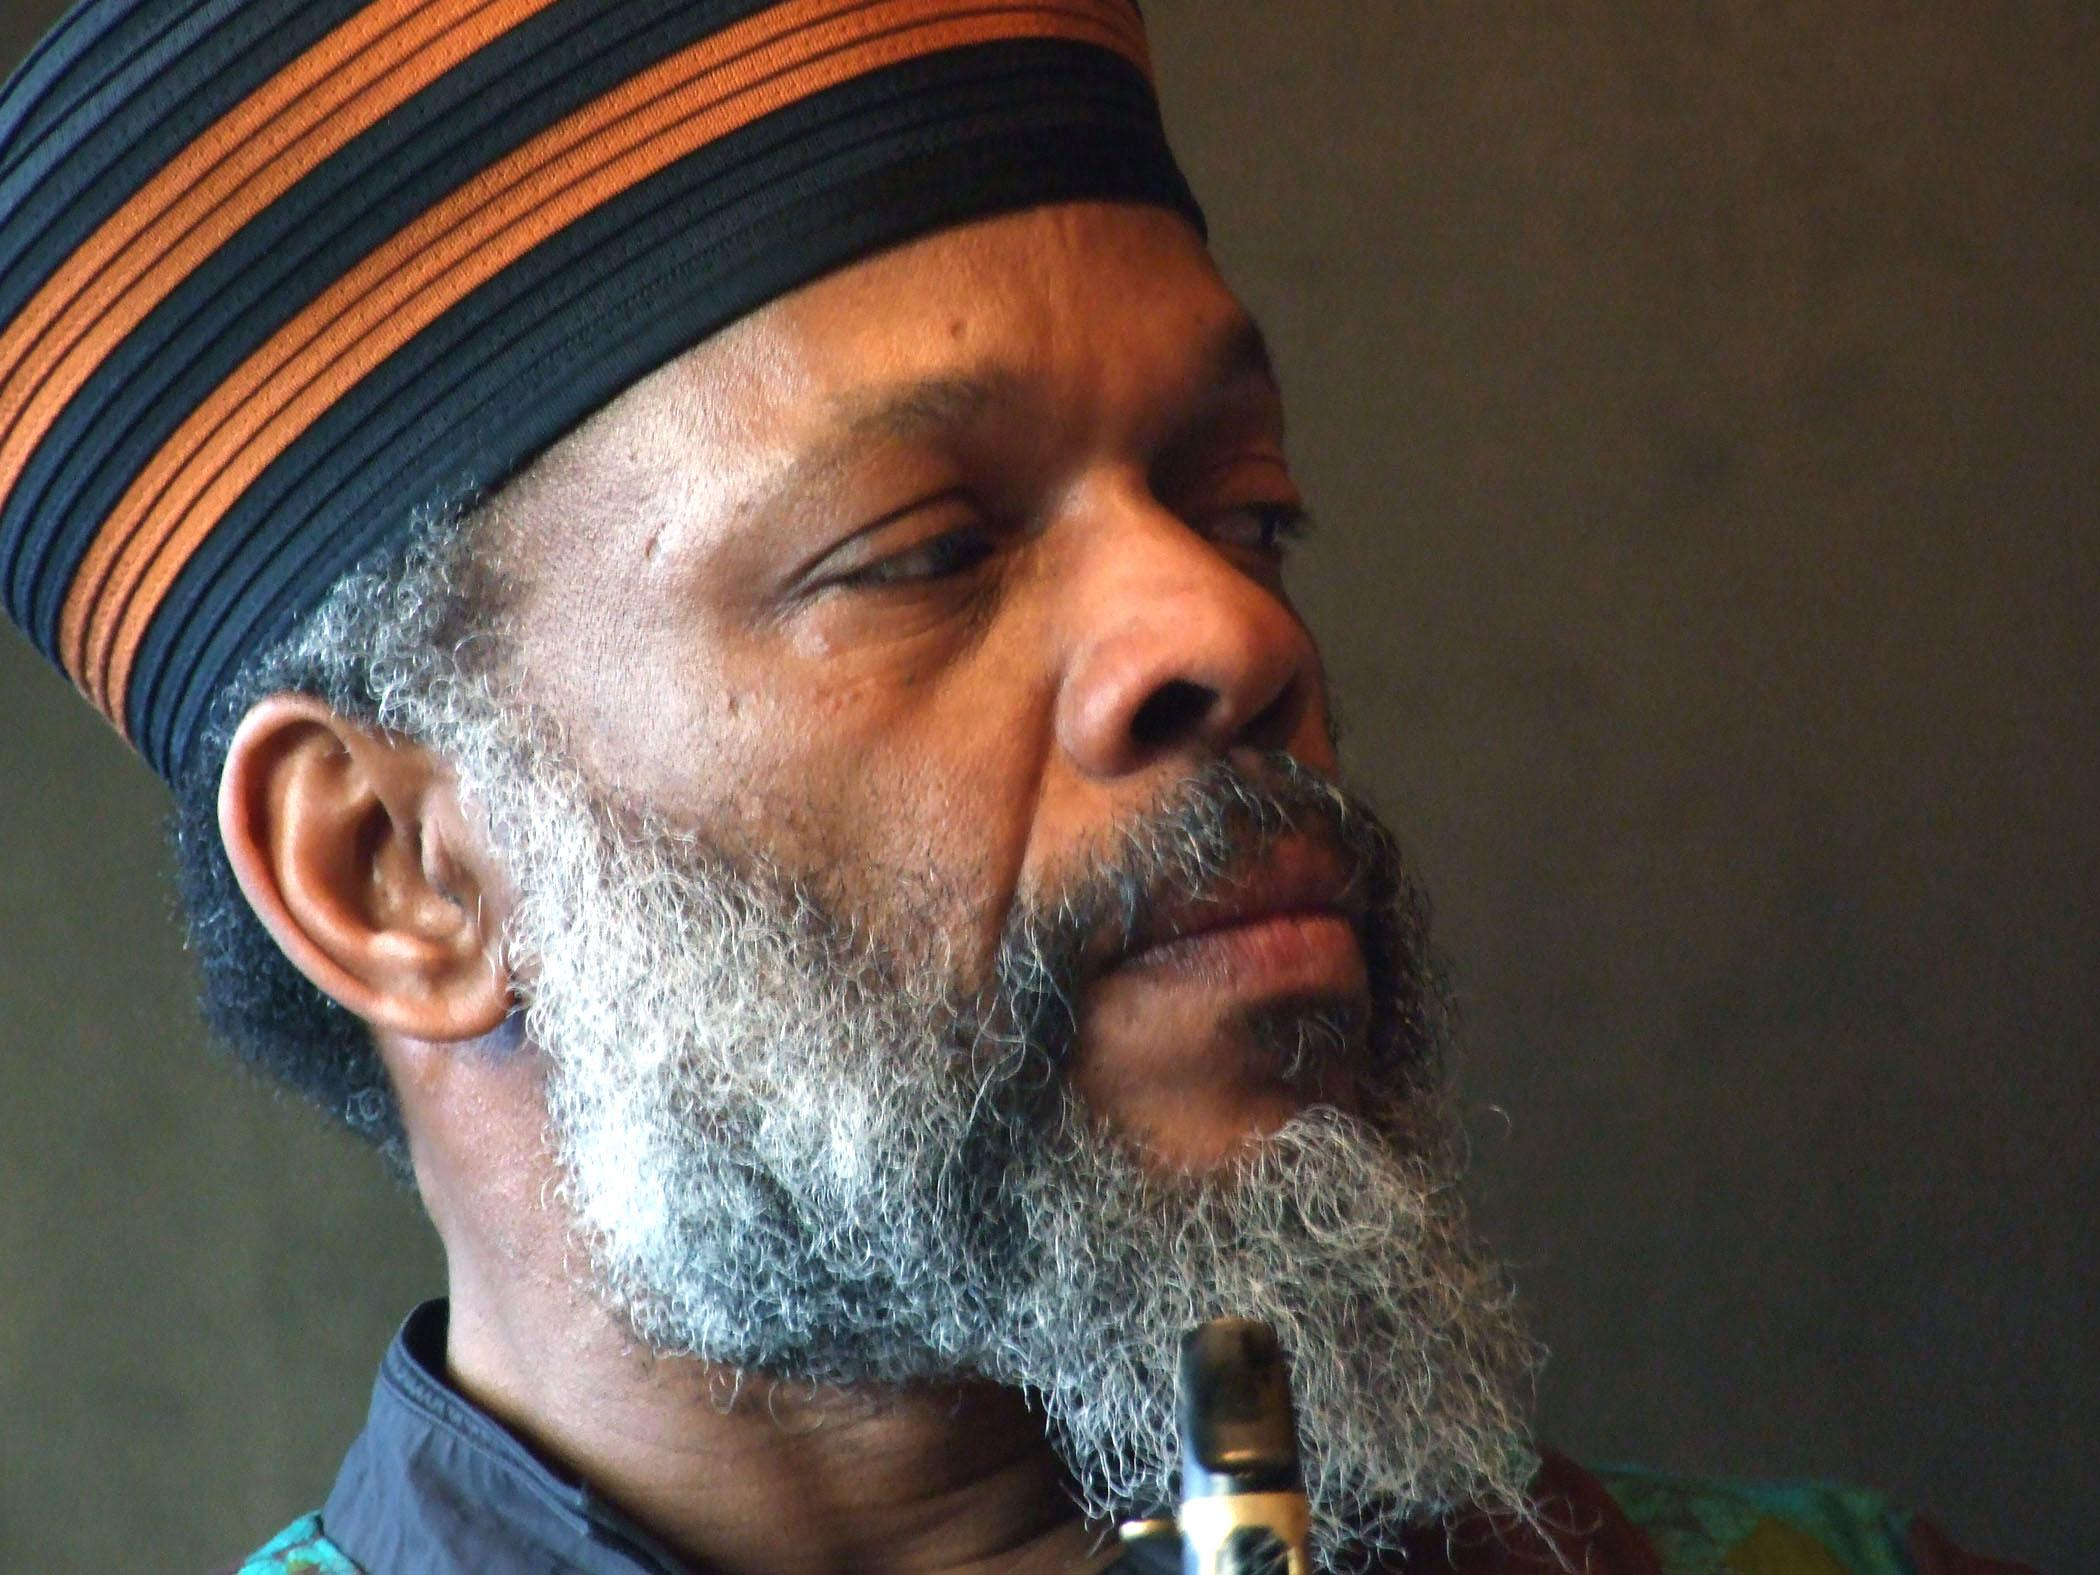 Portrait of a man with a long grey beard wearing a black and orange striped hat, the tip of a woodwind reed near his chin